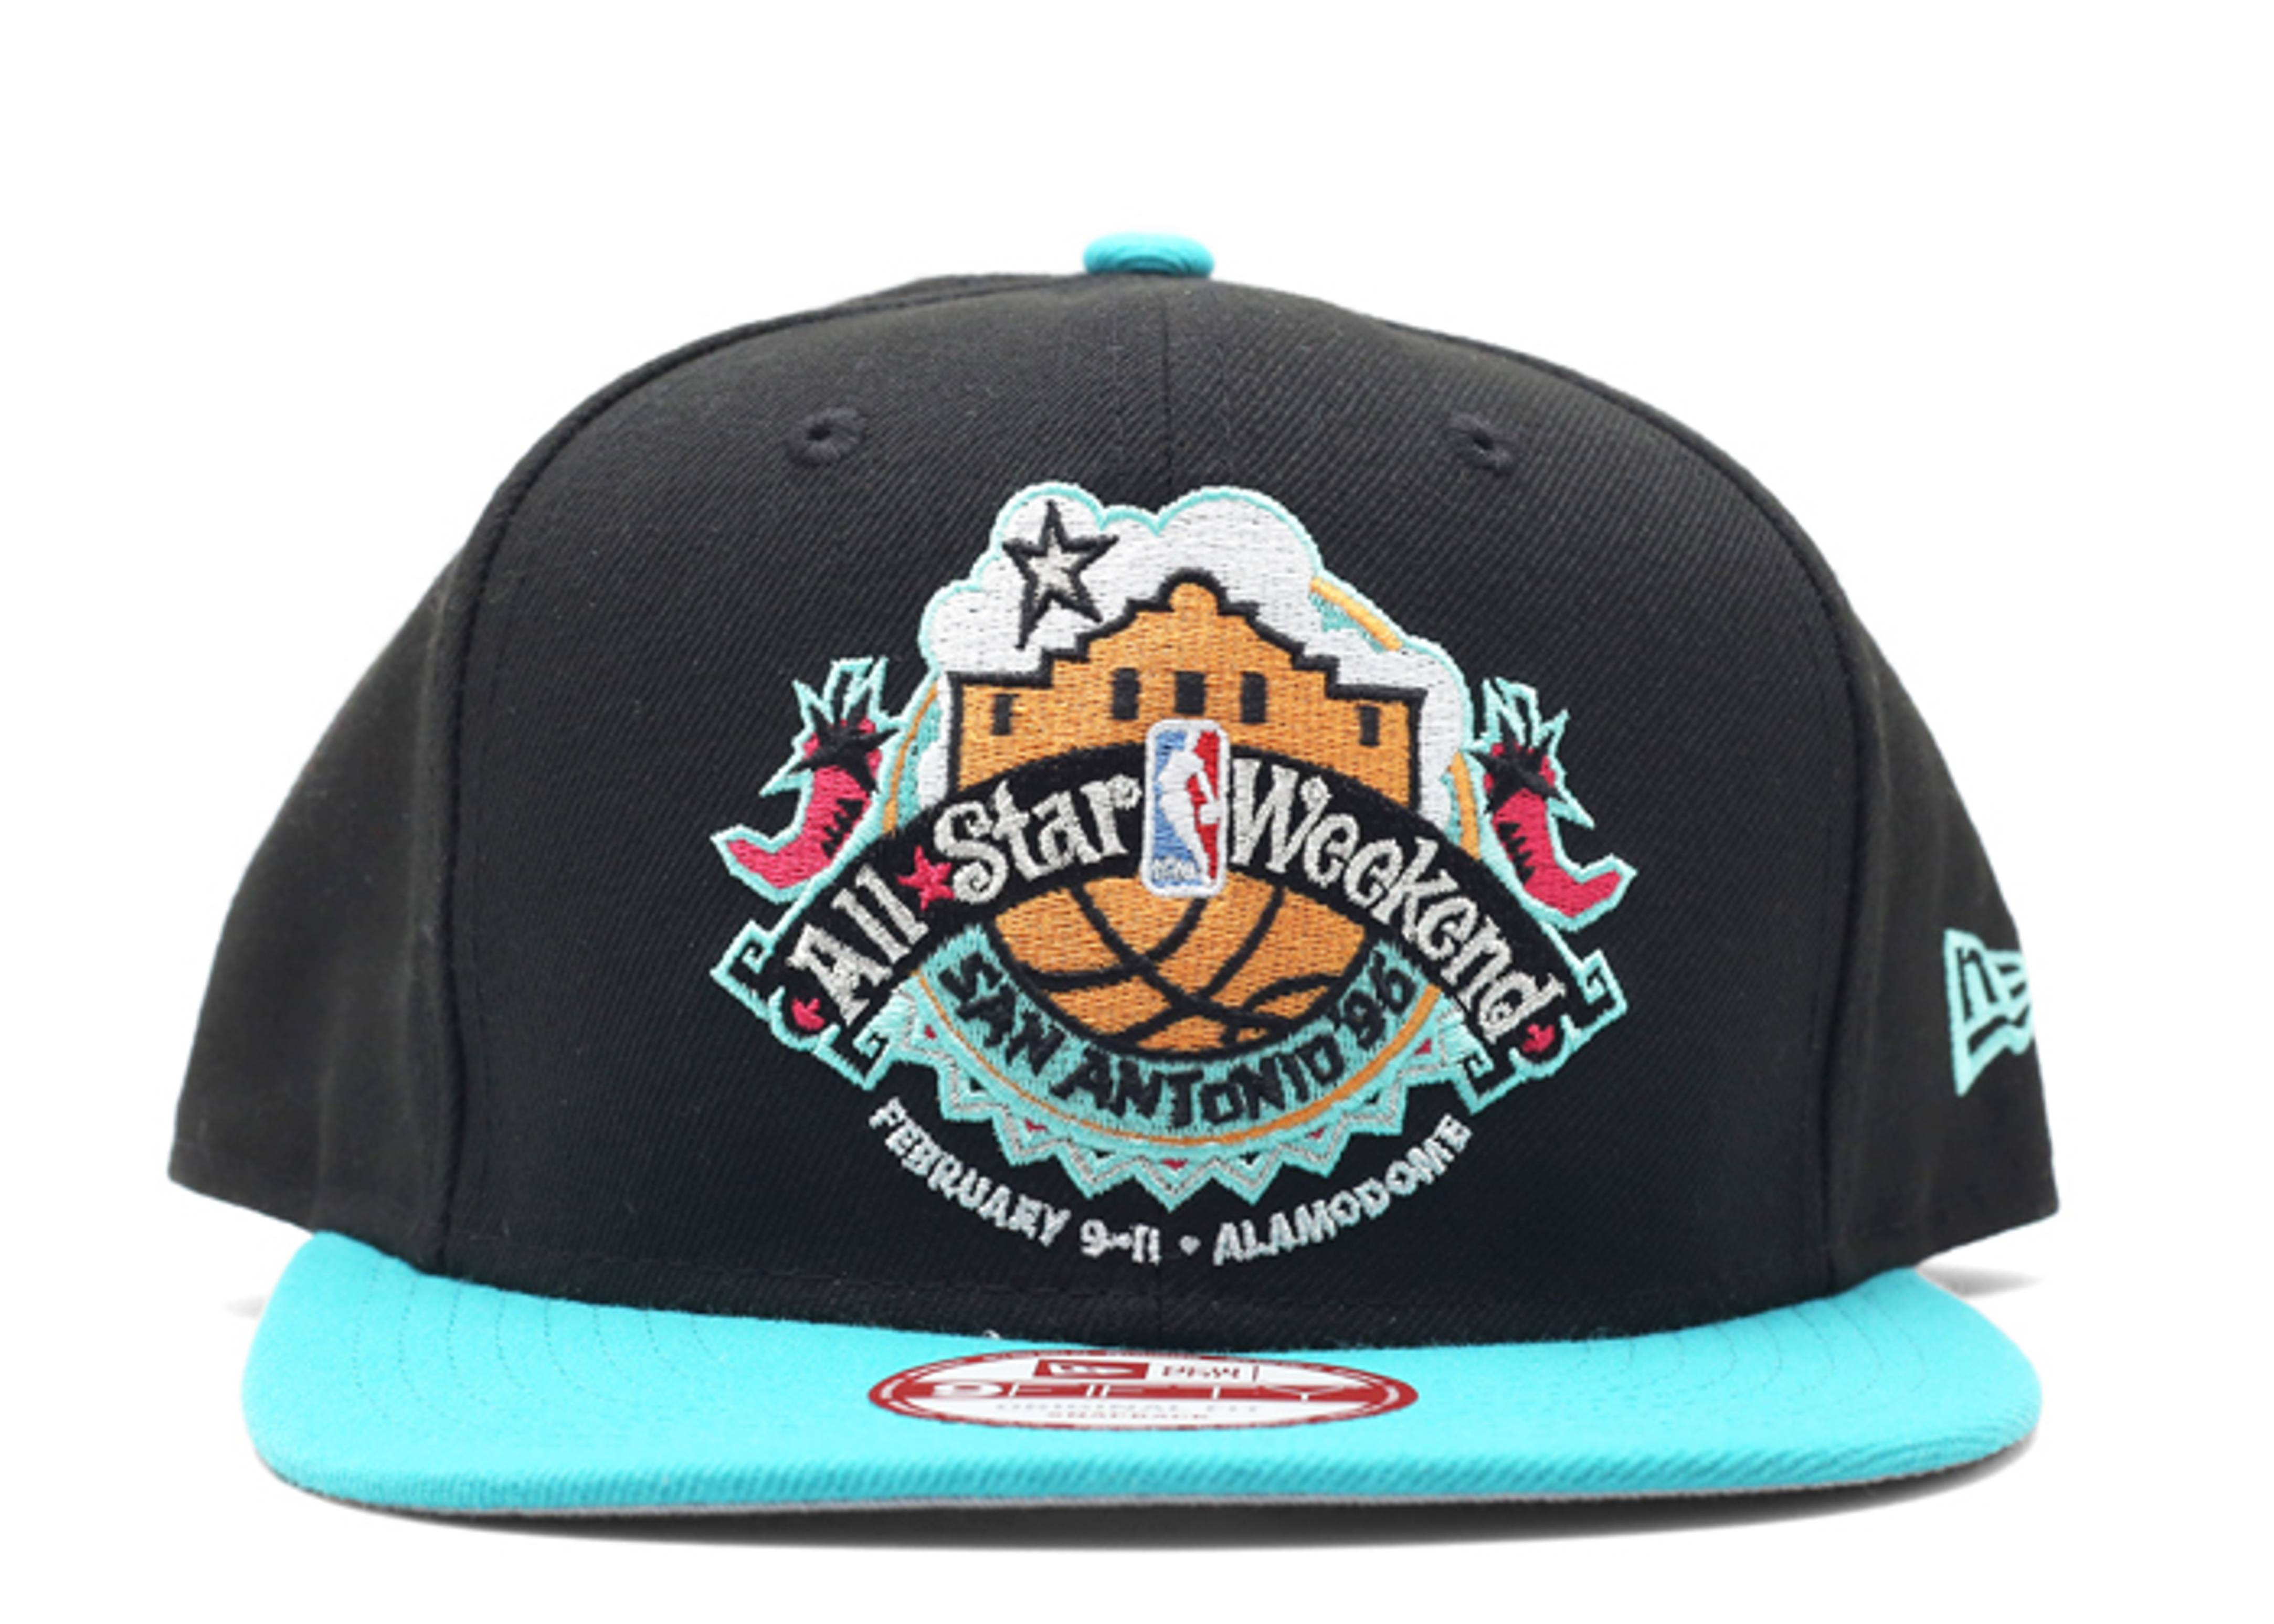 1996 all star weekend snap-back